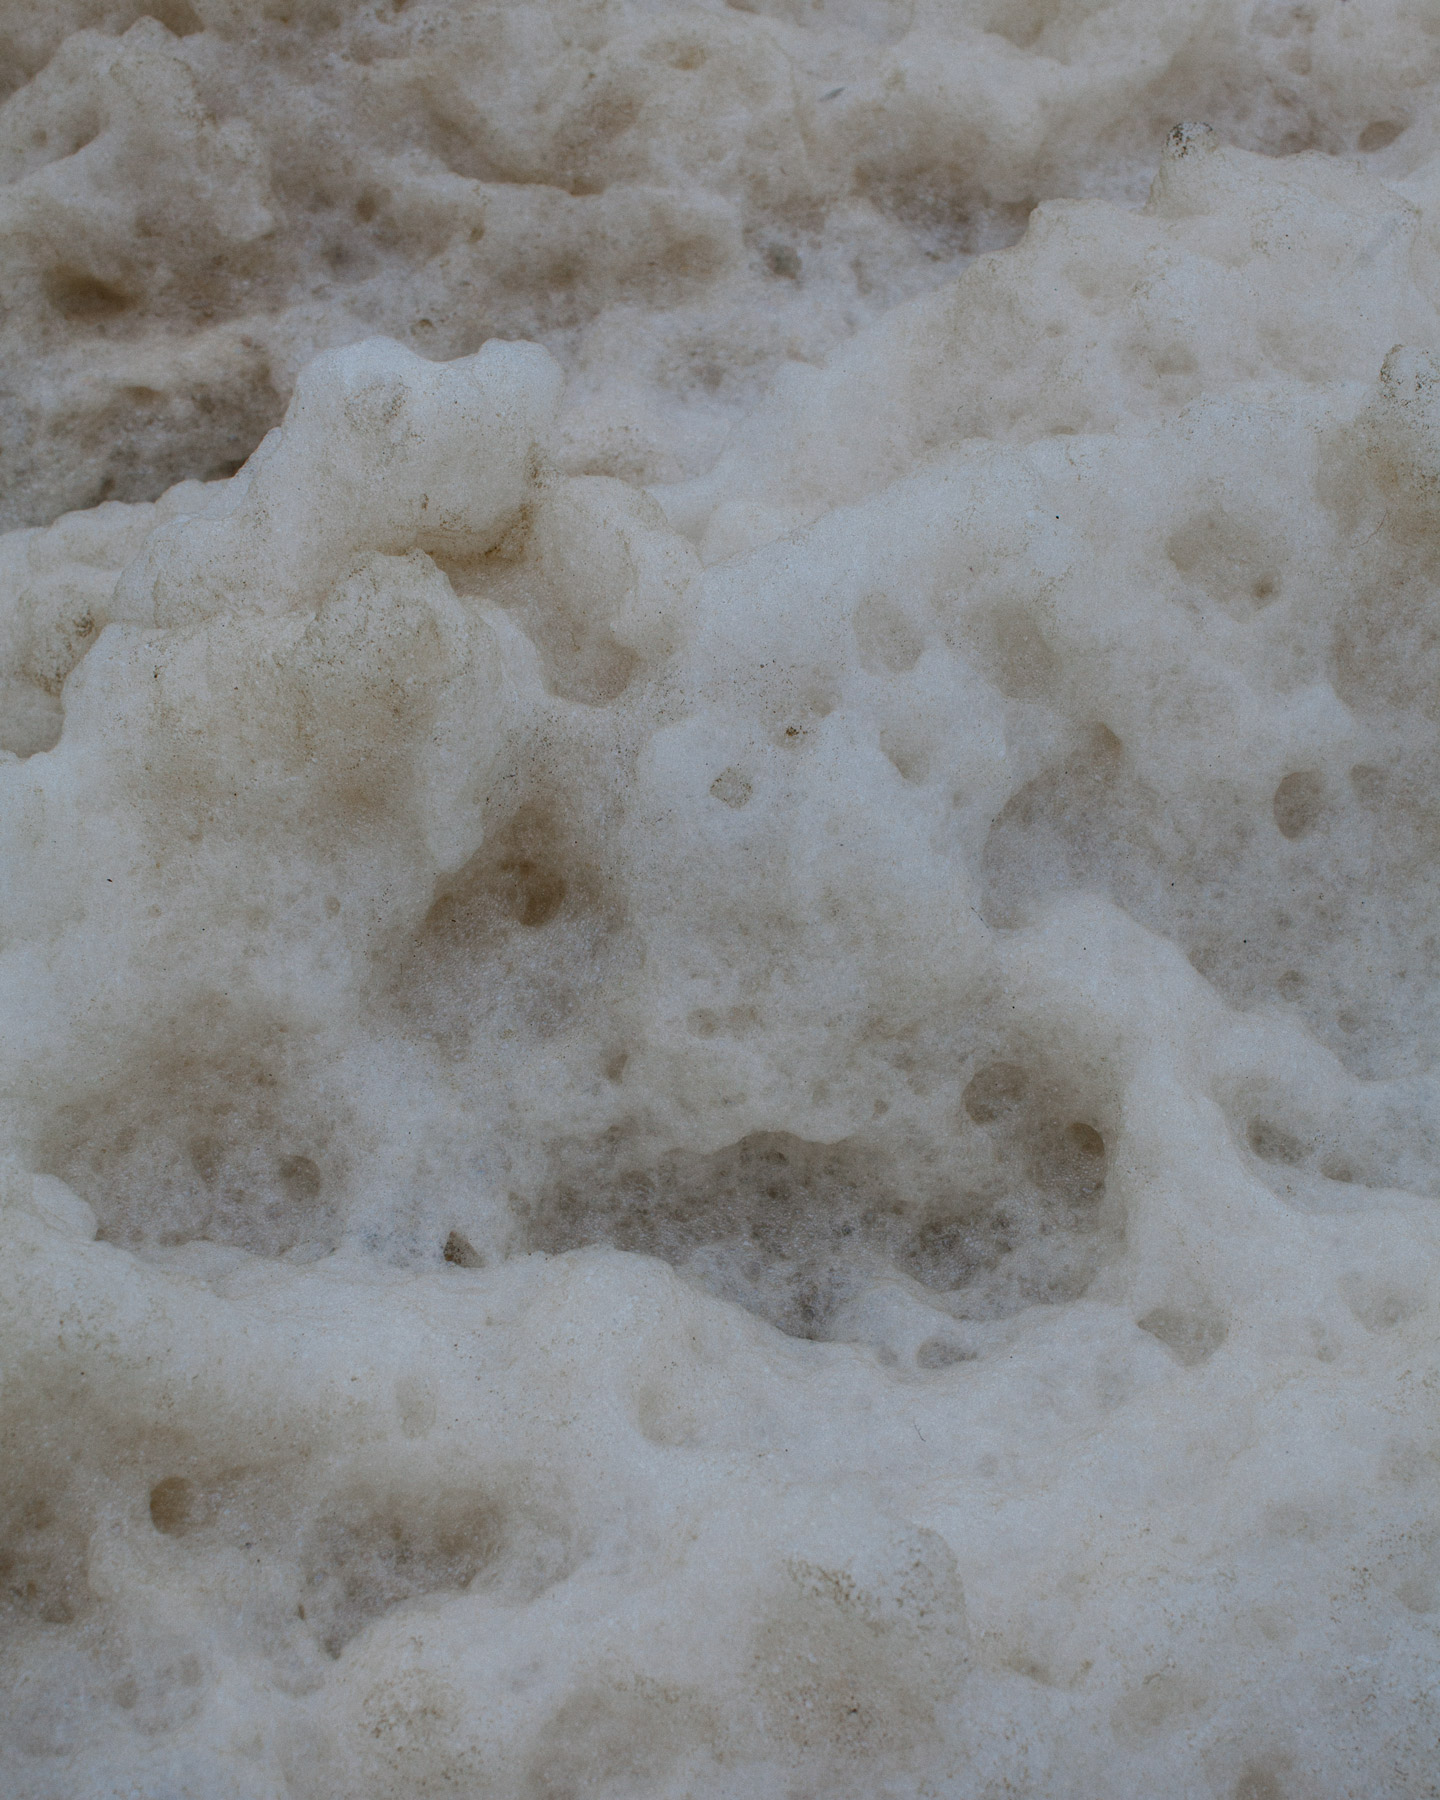 Sea foam residue left by the waves.